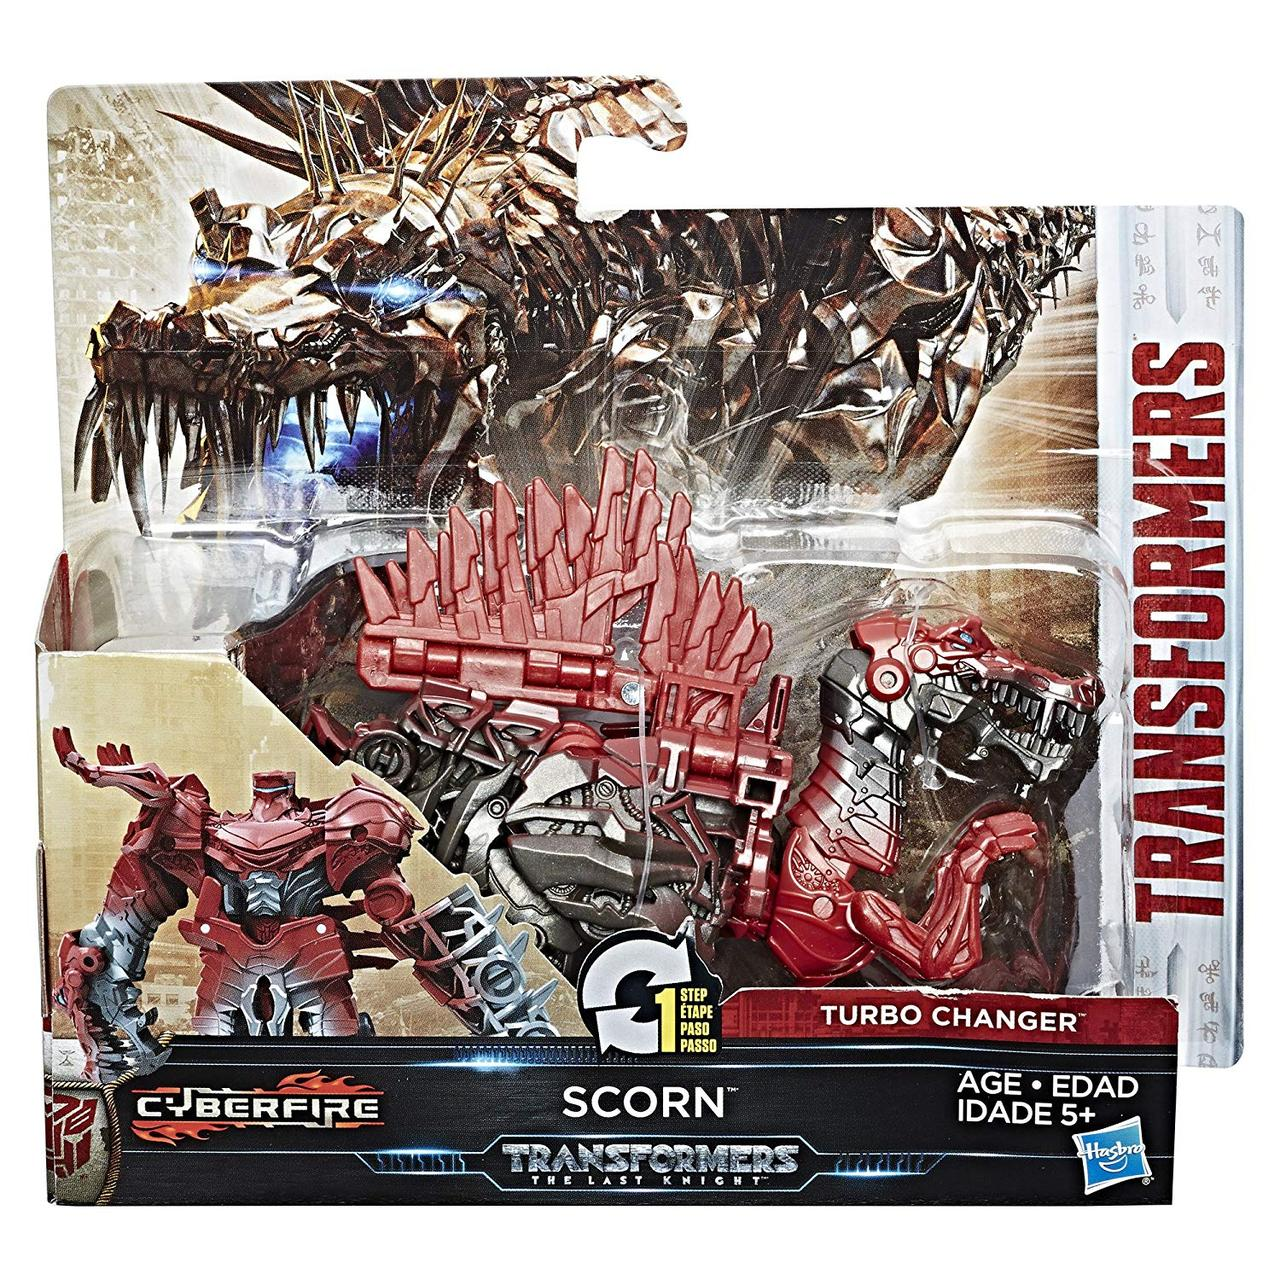 Transformers: The Last Knight 1-Step Turbo Changer Scorn - Турбо Чейнджерс MV5 Солнце Hasbro transformer C3134